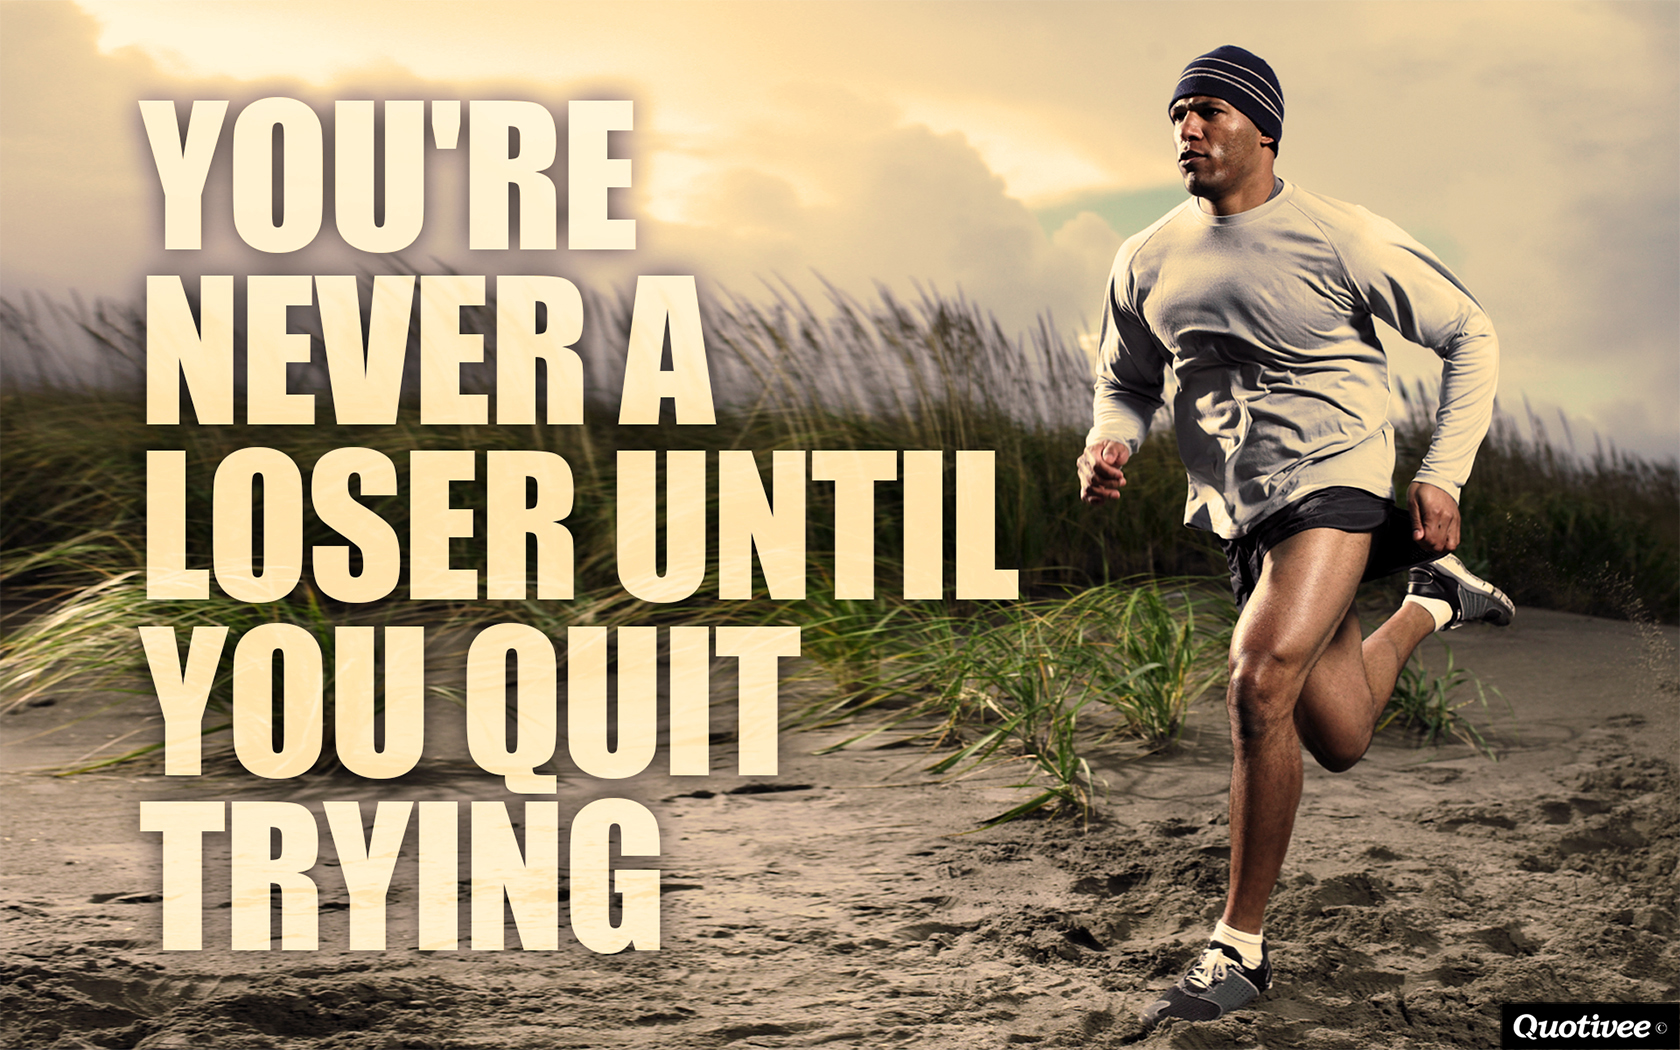 Motivating Quote Wallpaper You Re Never A Loser Until You Quit Trying Inspirational